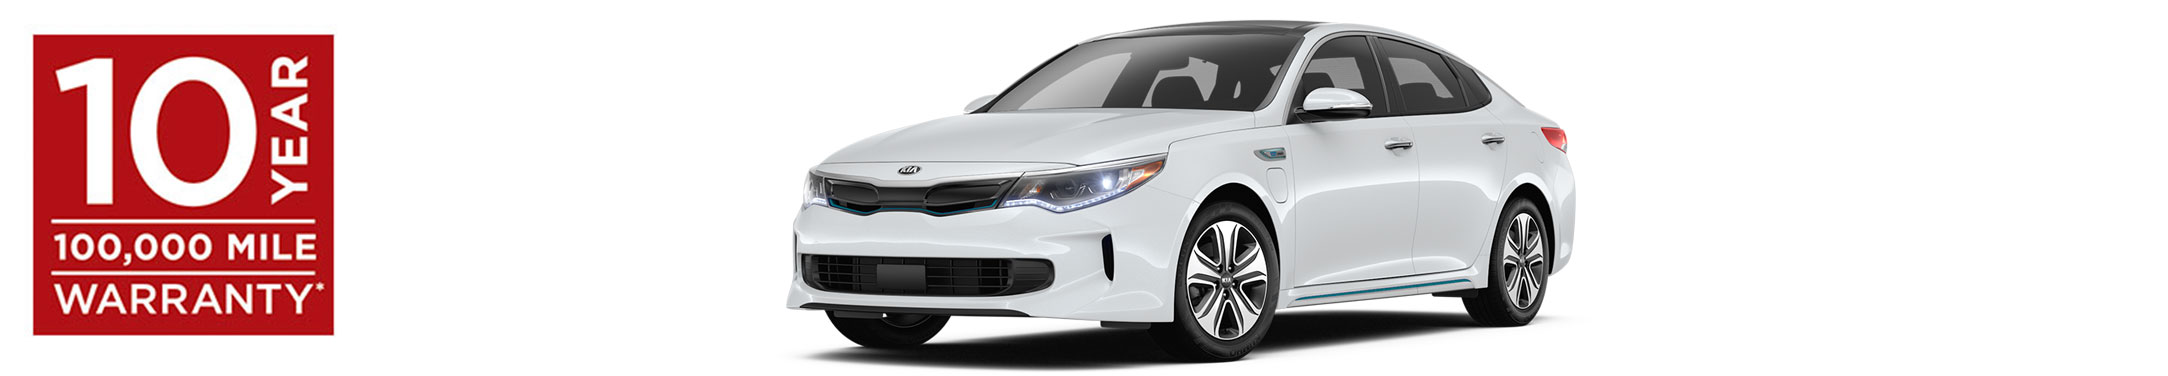 Premier Kia of Kenner Warranty